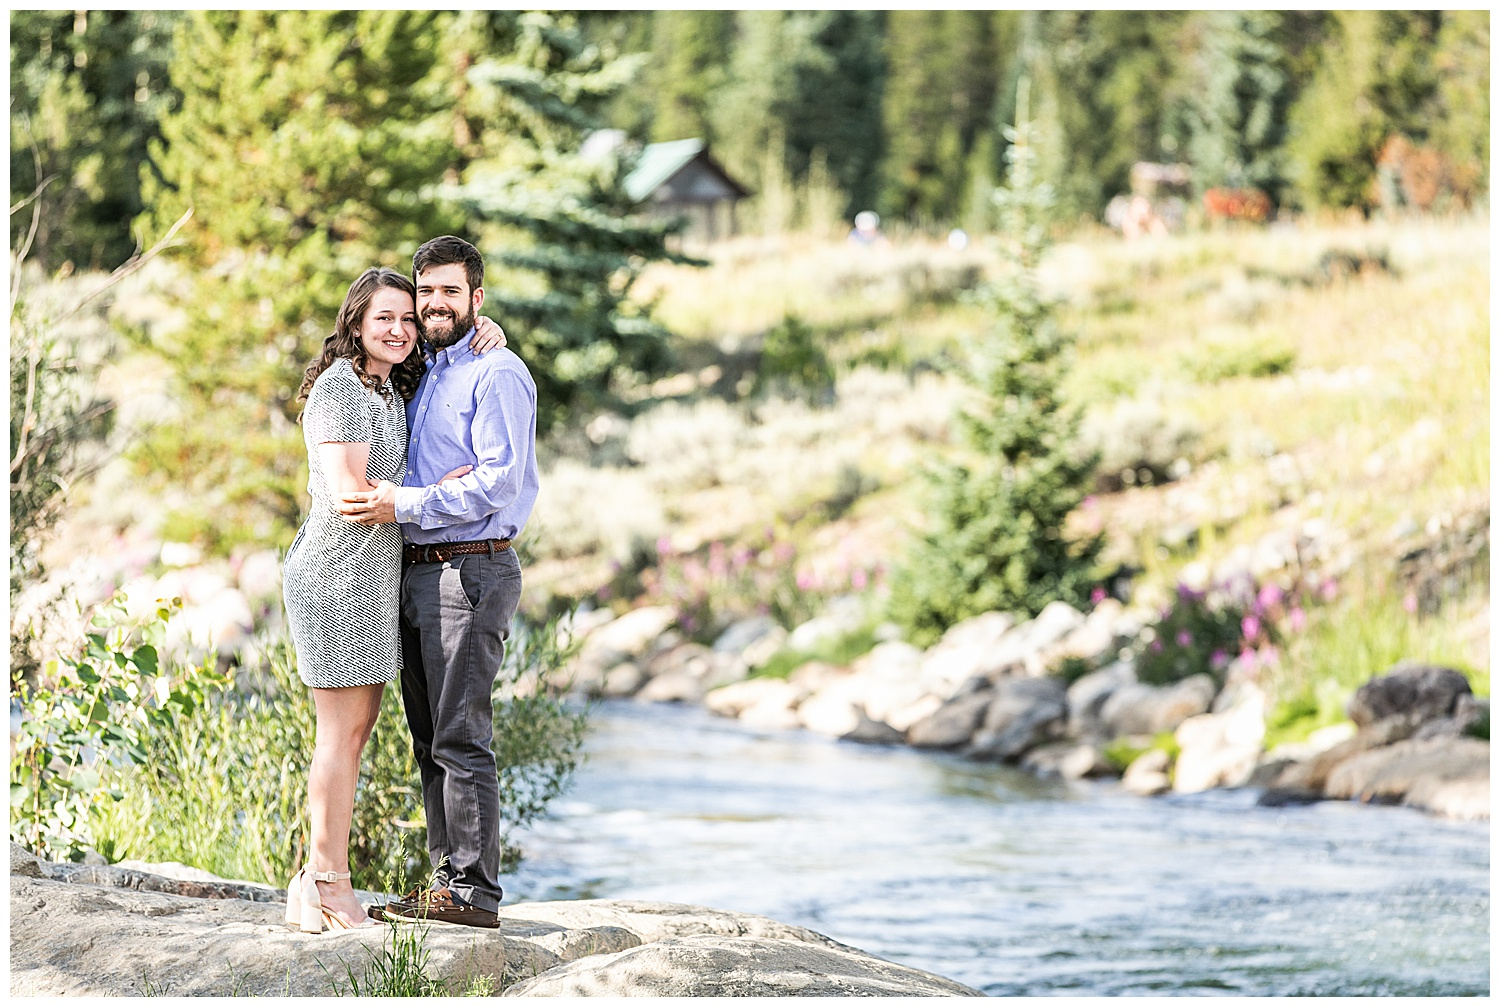 Molly + Ryan Breckenridge Destination Engagement Session Living Radiant Photography_0021.jpg